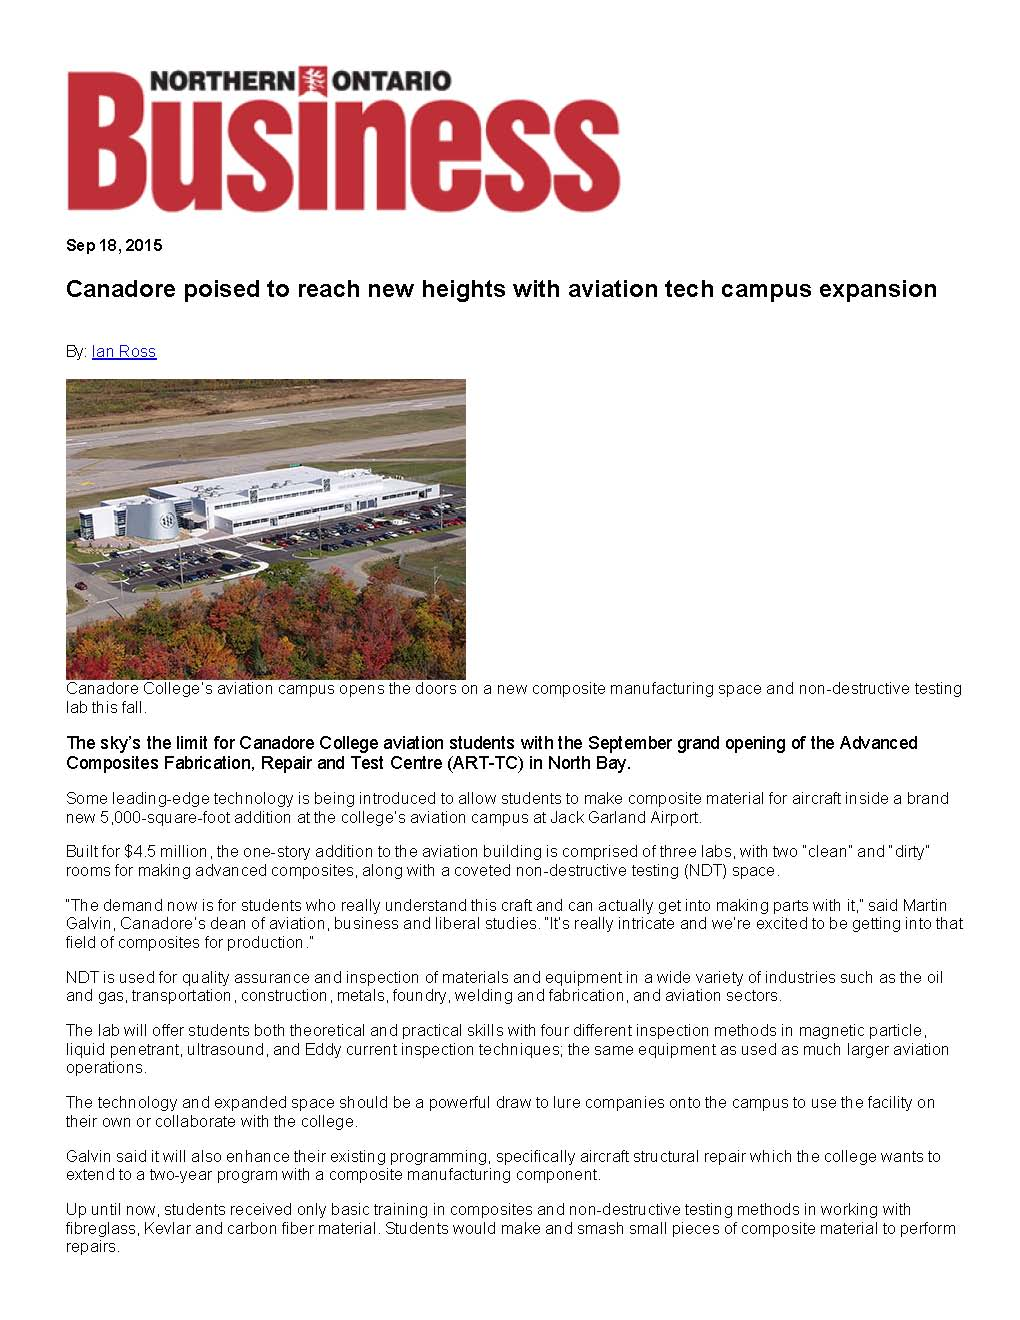 North Bay college poised to reach new heights with aviation tech campus expansion_Page_1.jpg